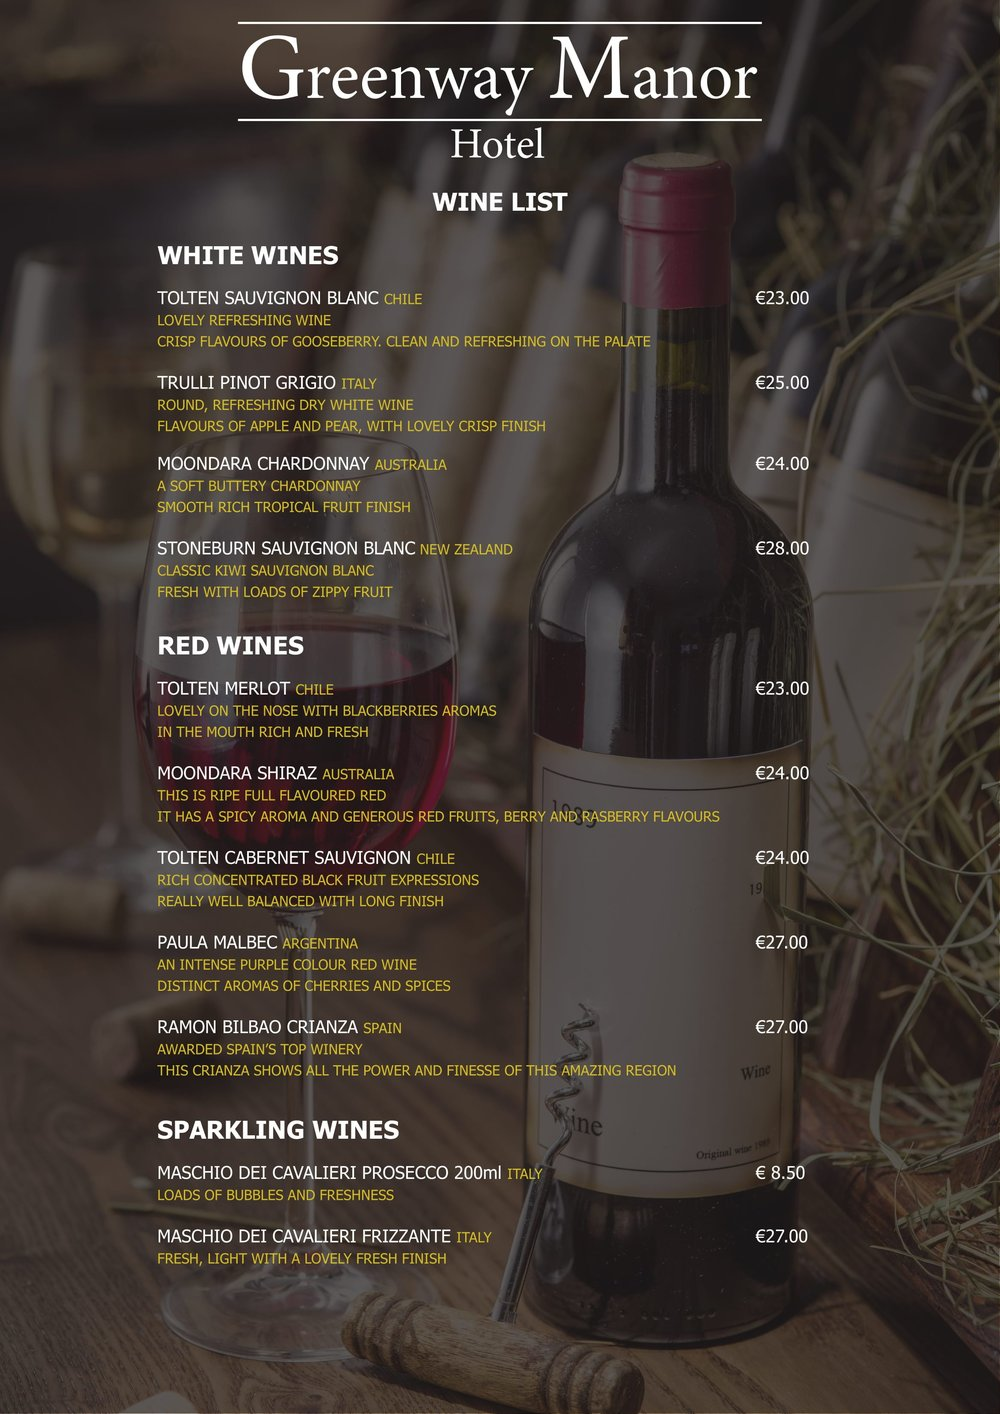 Greenway Manor Wine Menu 03-08-18.jpg